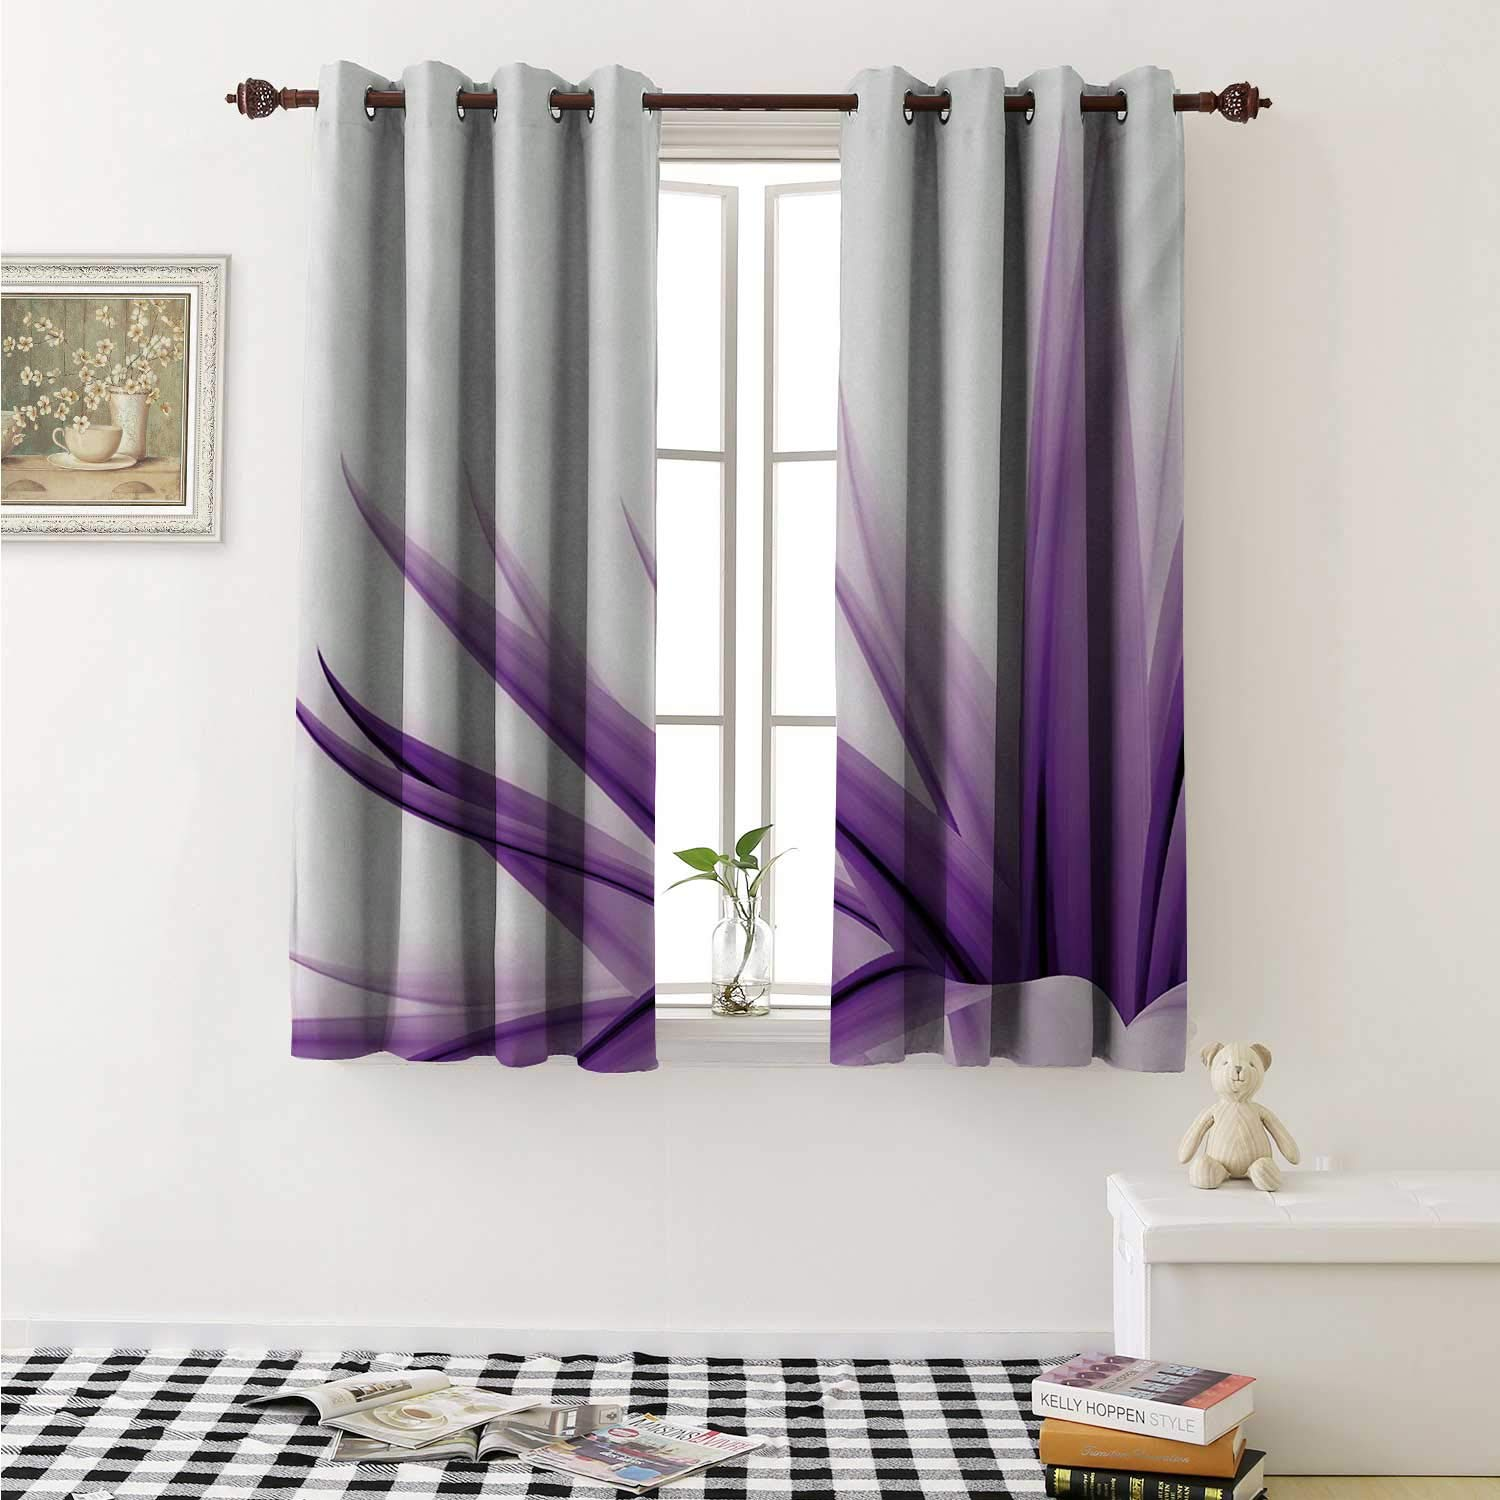 shenglv Flower Window Curtain Fabric Purple Ombre Style Long Leaves Water Colored Print with Calming Details Image Curtains and Drapes for Living Room W55 x L63 Inch Purple and White by shenglv